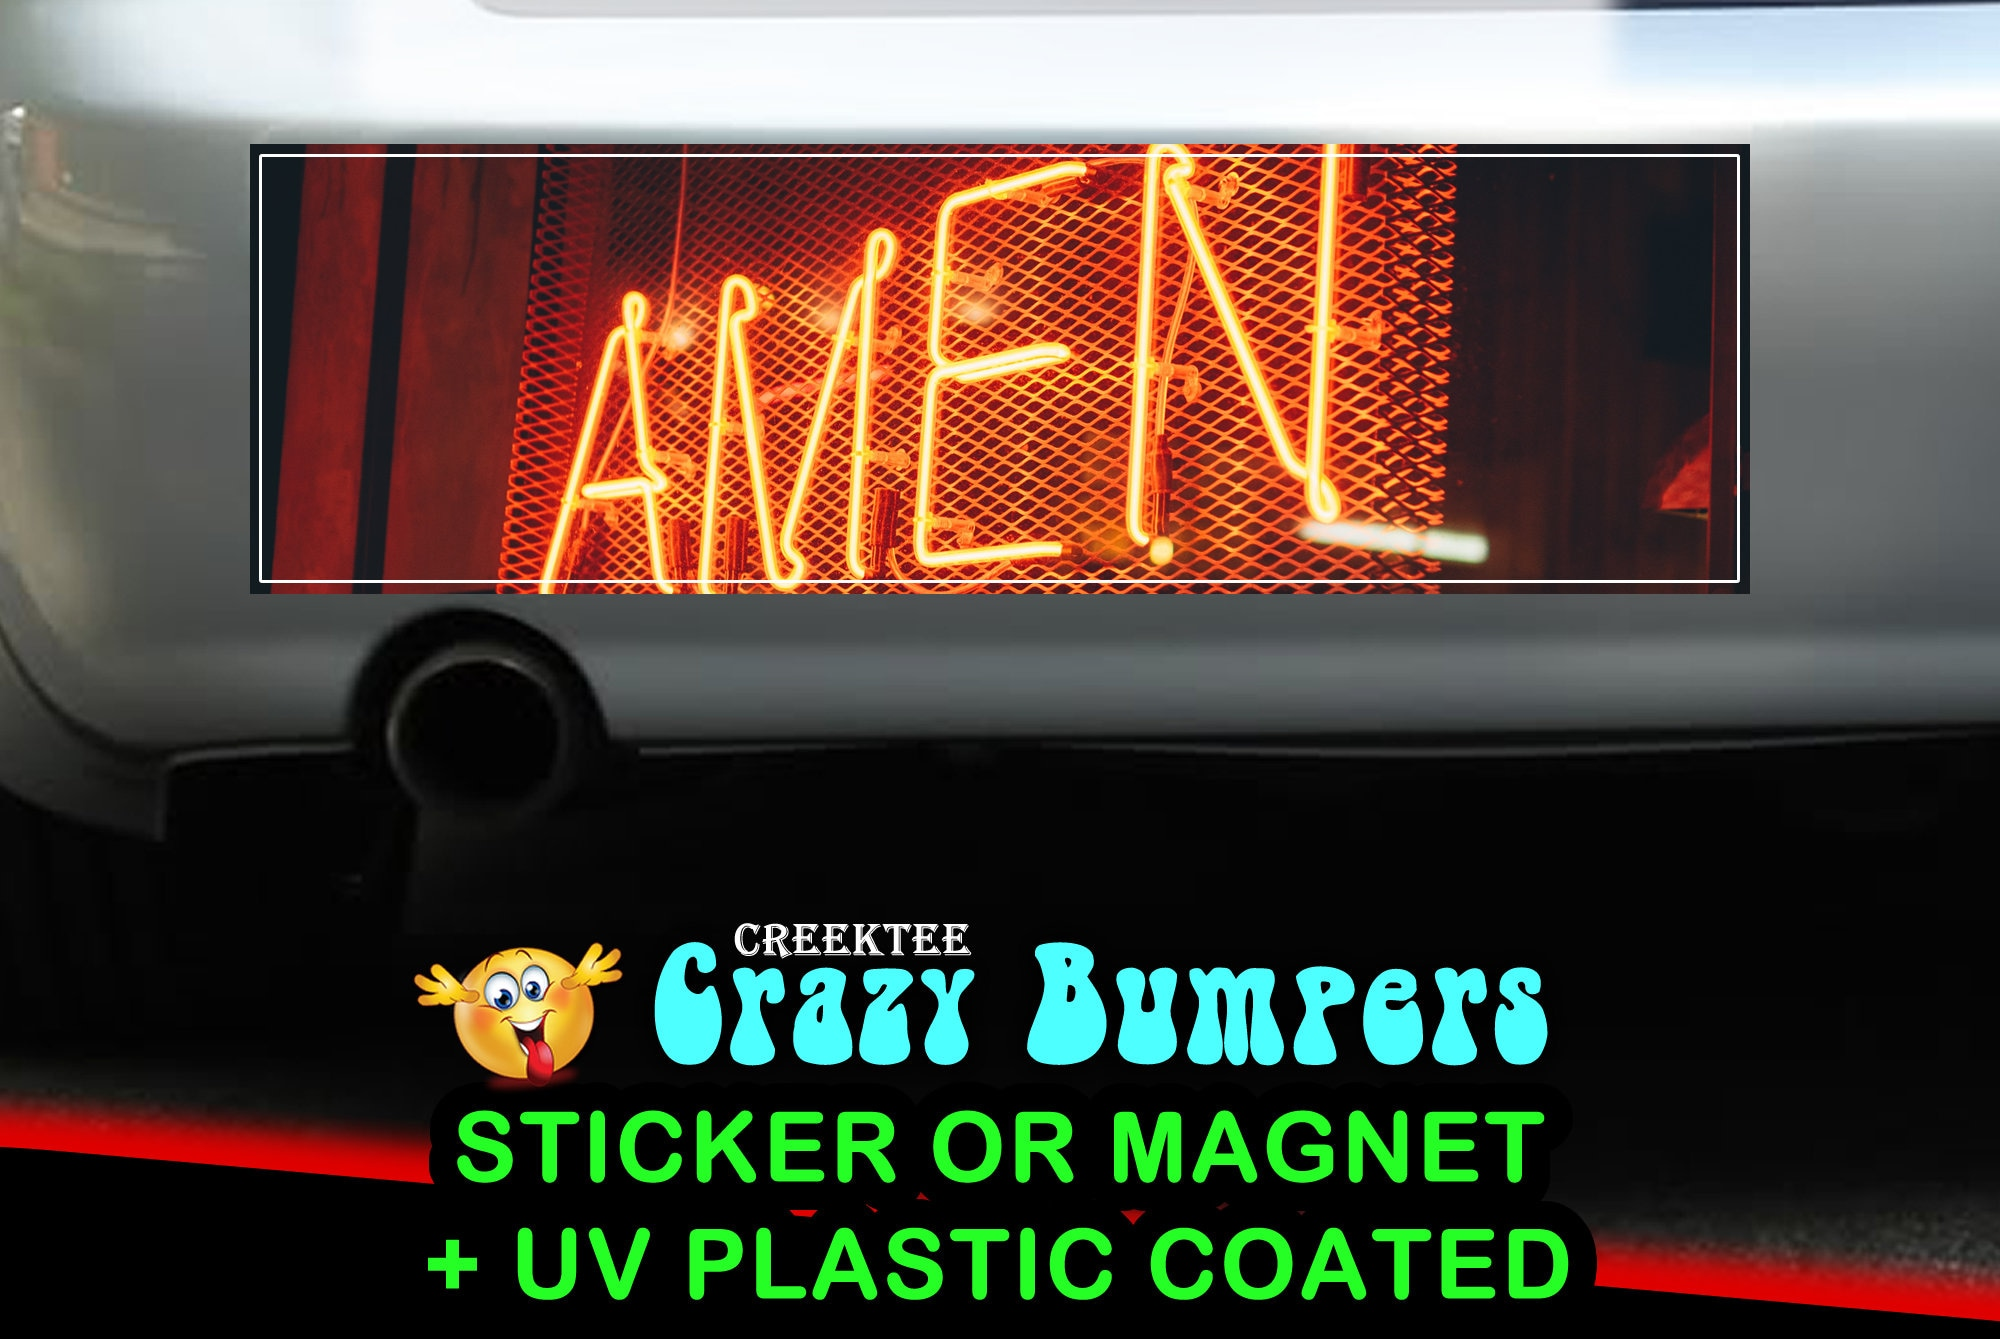 CAD$7.99 - Neon Amen With Me 10 x 3 Bumper Sticker or Magnet - Custom changes and orders welcomed!